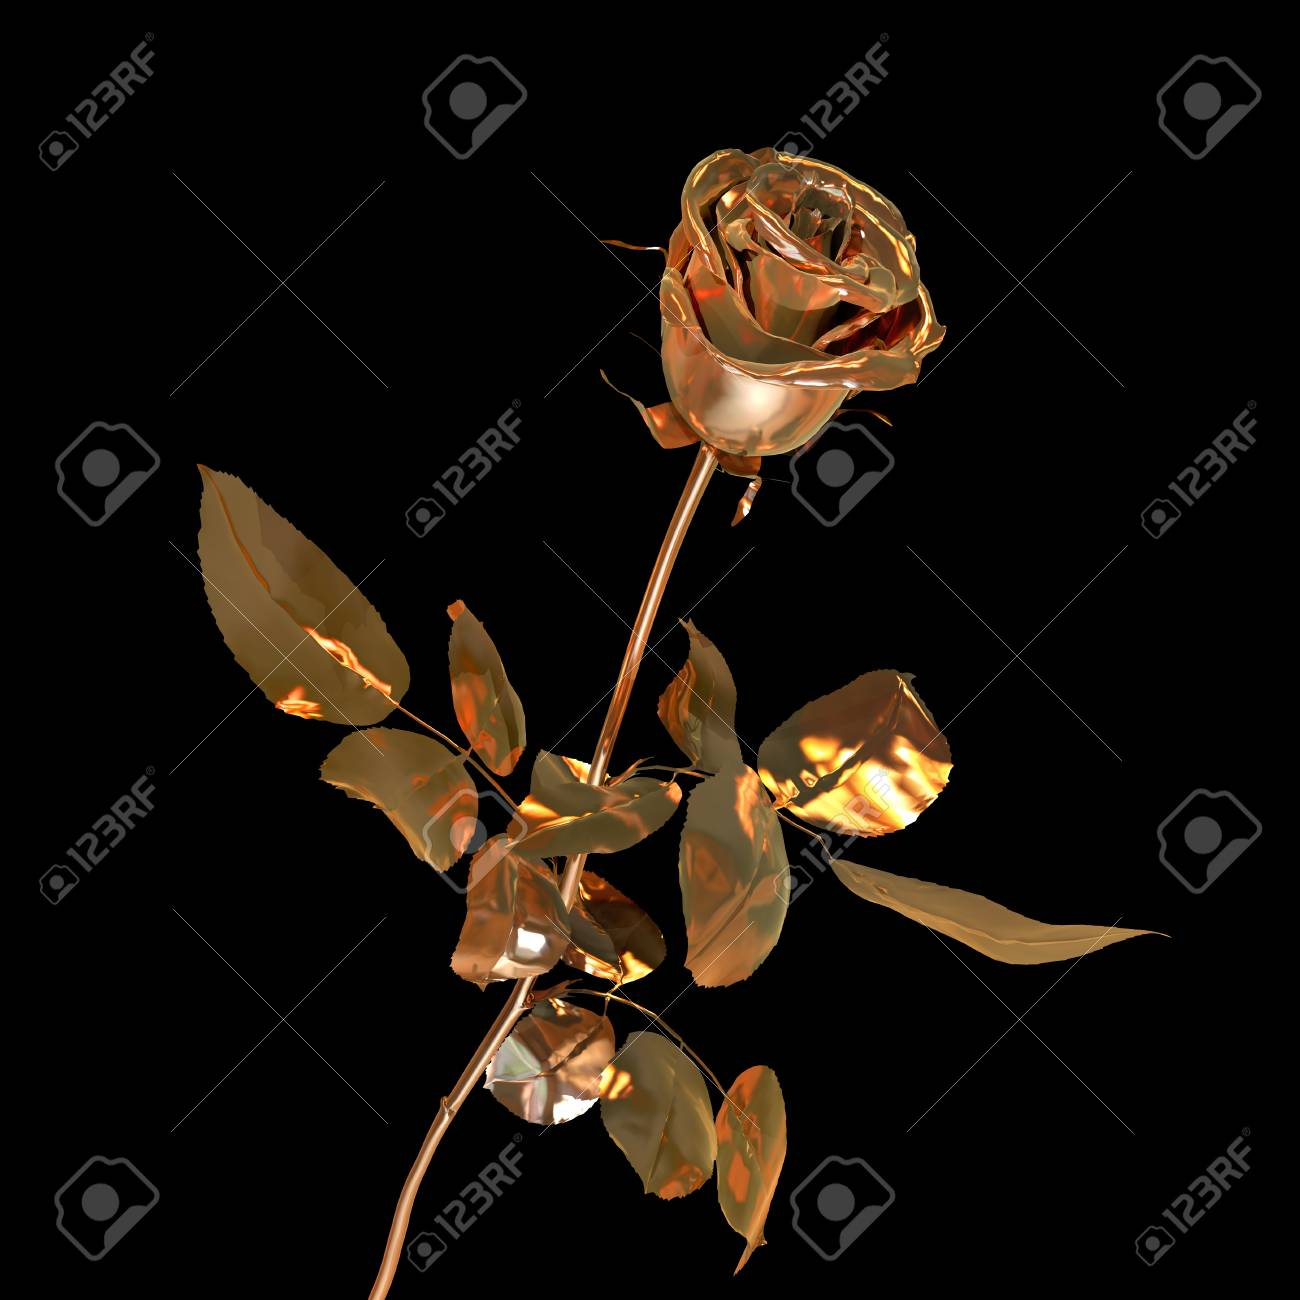 single rose made of fine gold isolated on black Stock Photo - 22471507